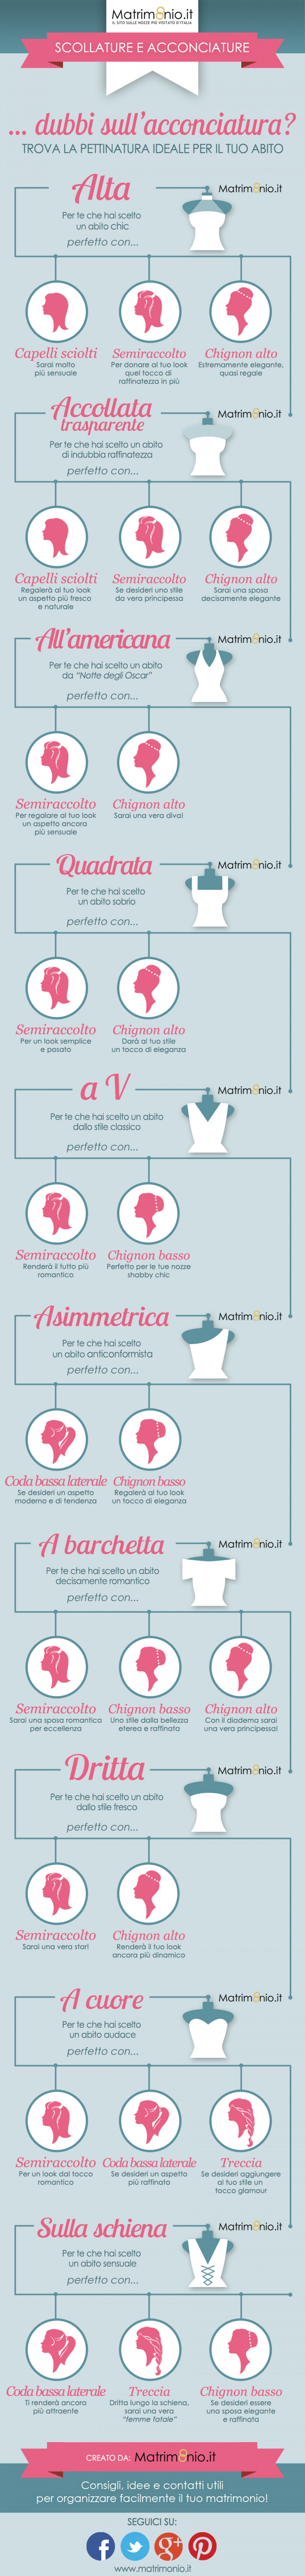 Scollature e Acconciature Infographic